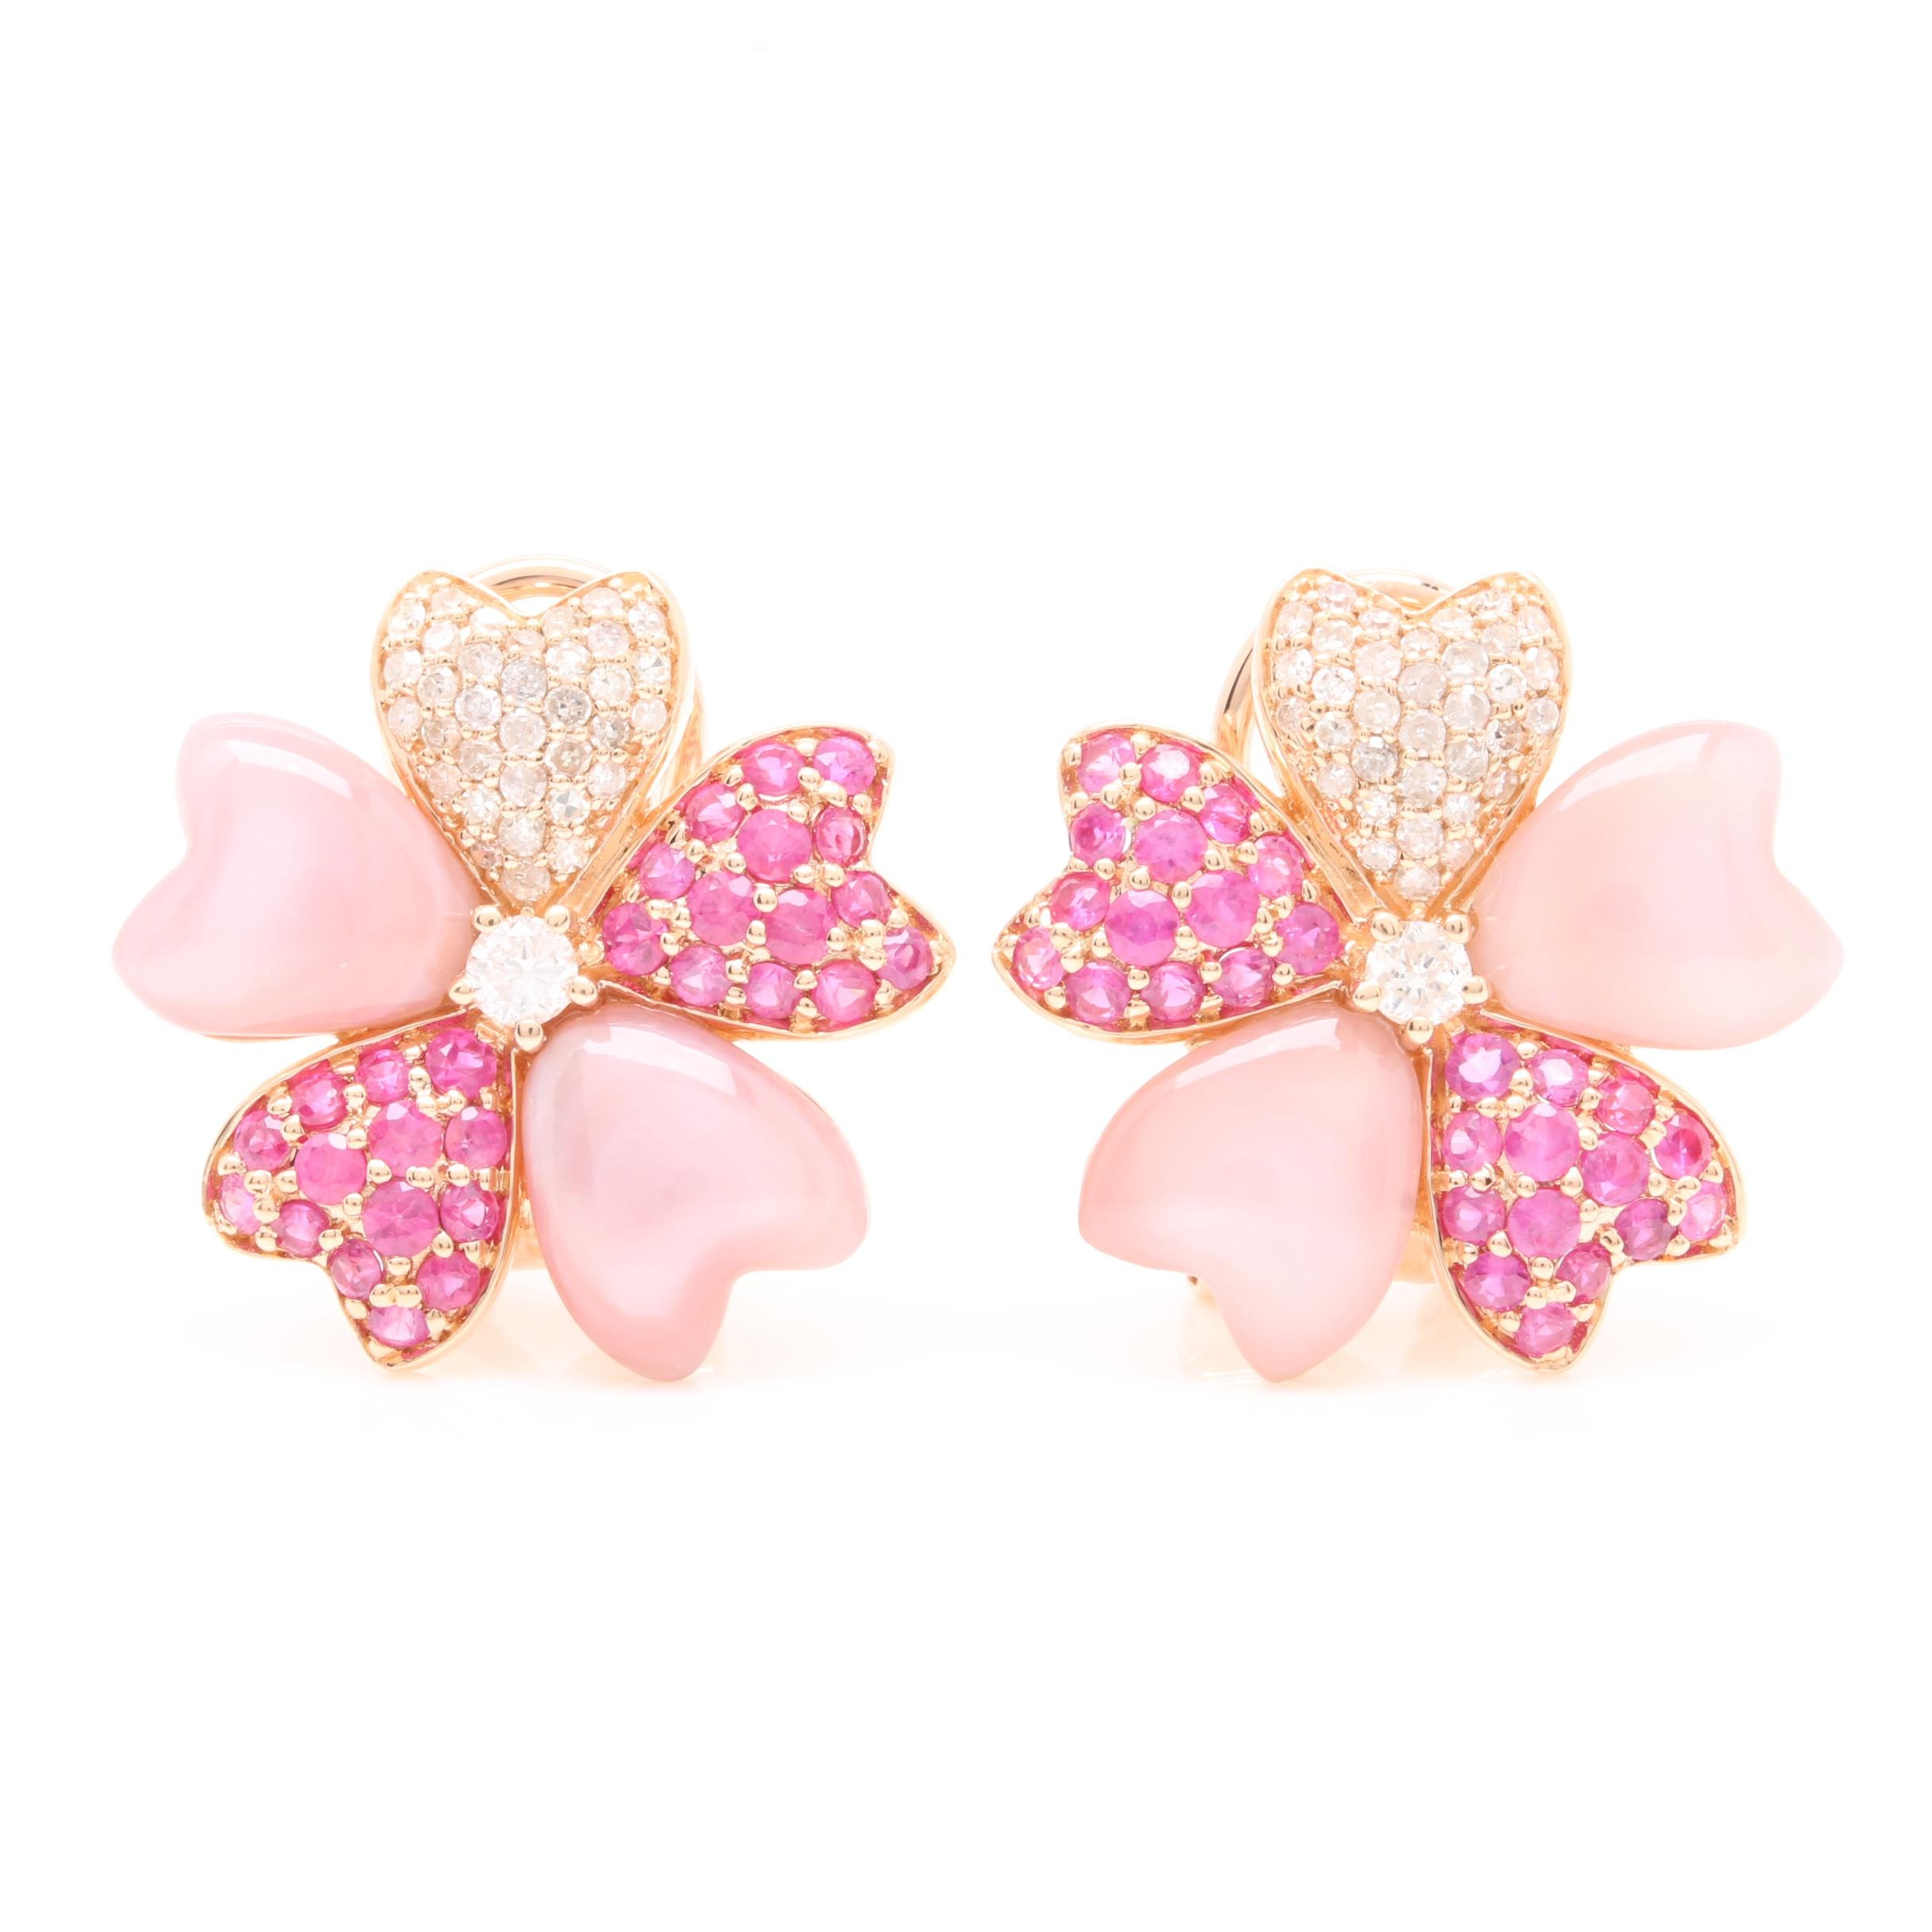 14K Rose Gold Diamond, Ruby, and Mother of Pearl Floral Earrings